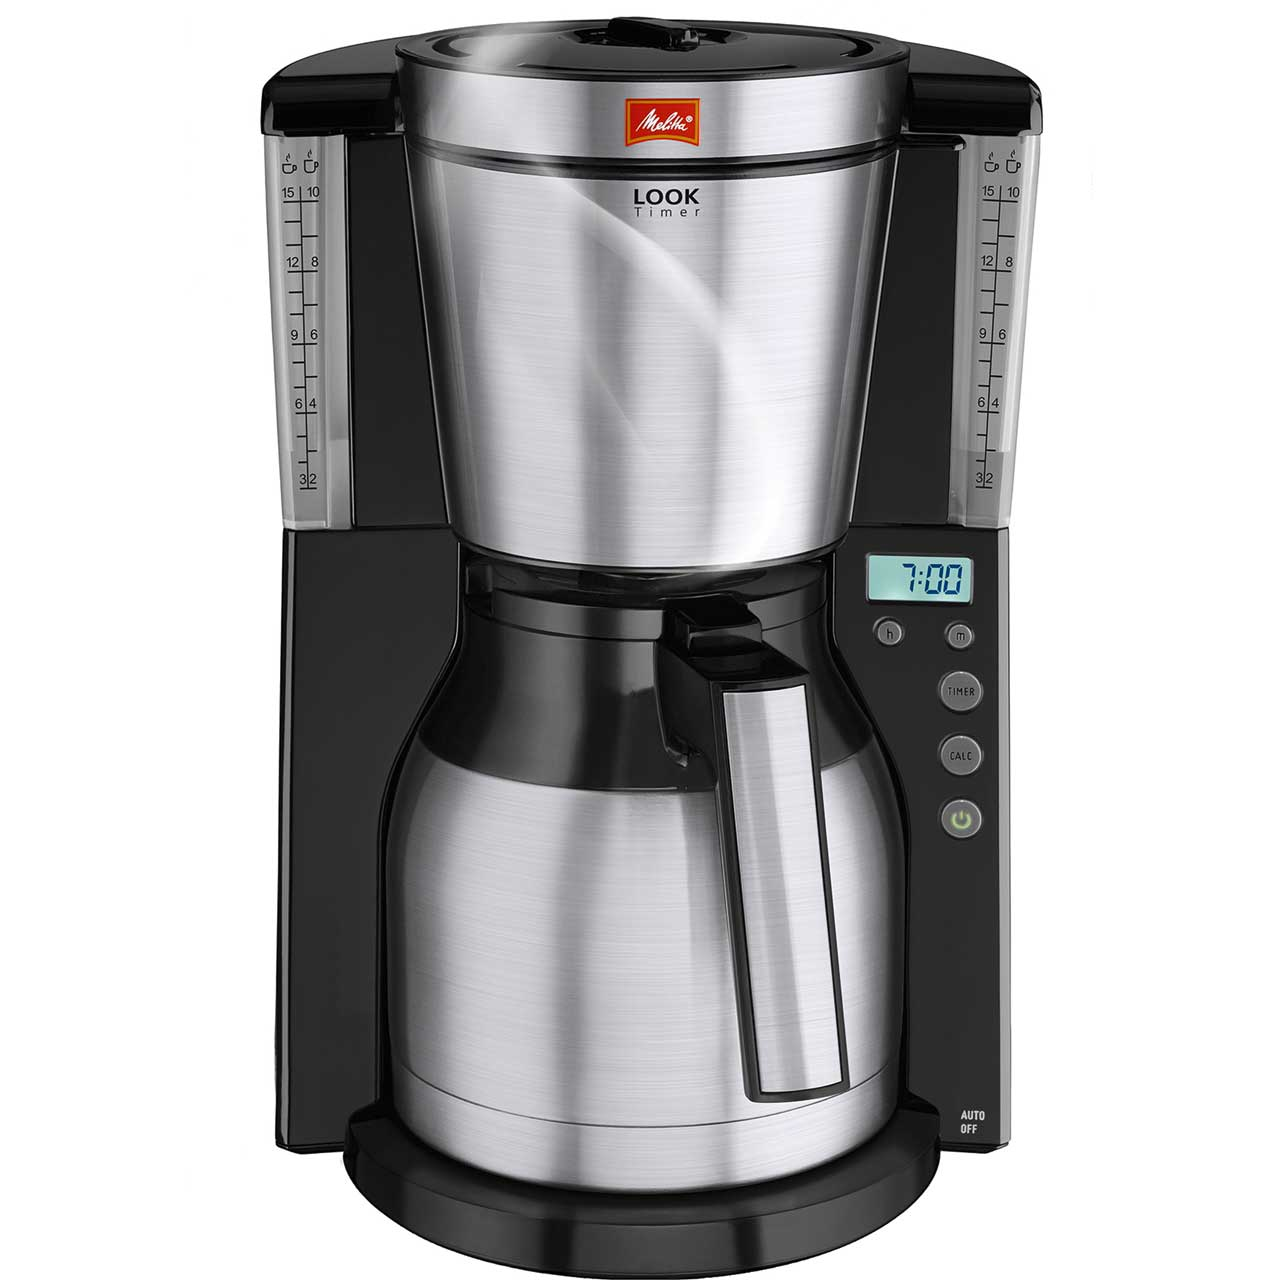 Melitta Look IV Therm Timer 6738044 Filter Coffee Machine with Timer - Black ao.com